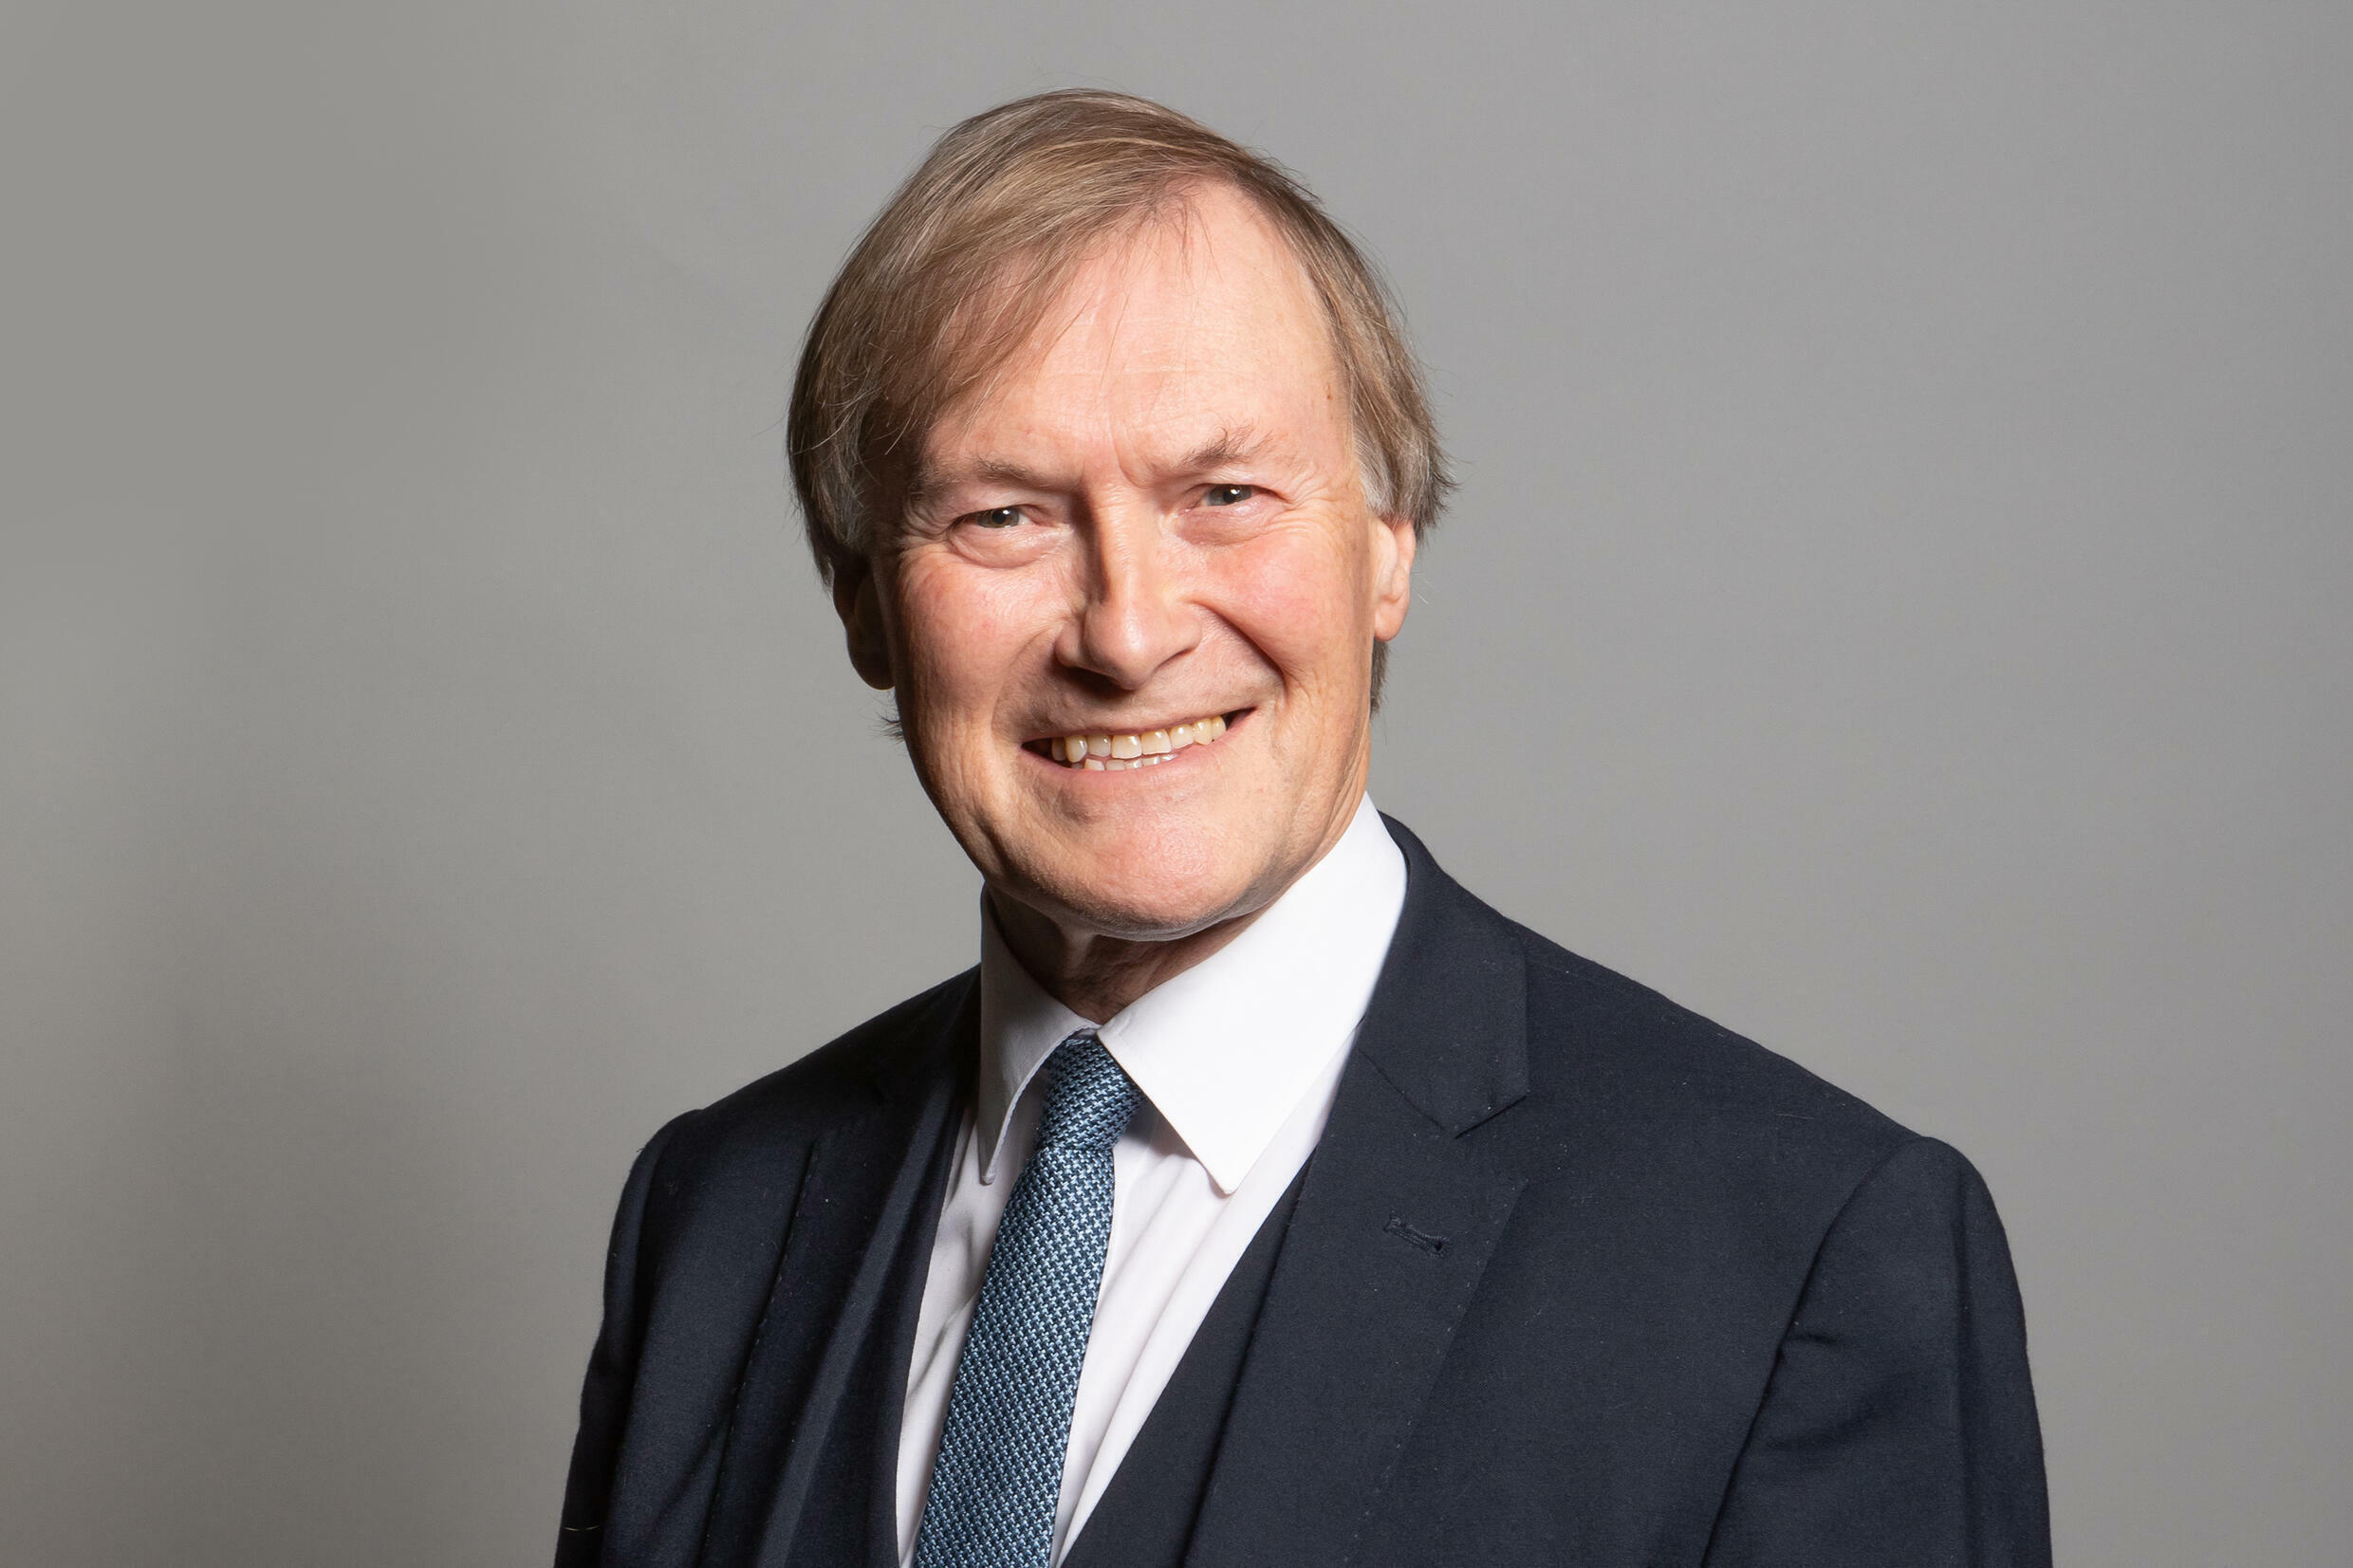 MP David Amess was stabbed at a weekly meeting with constituents